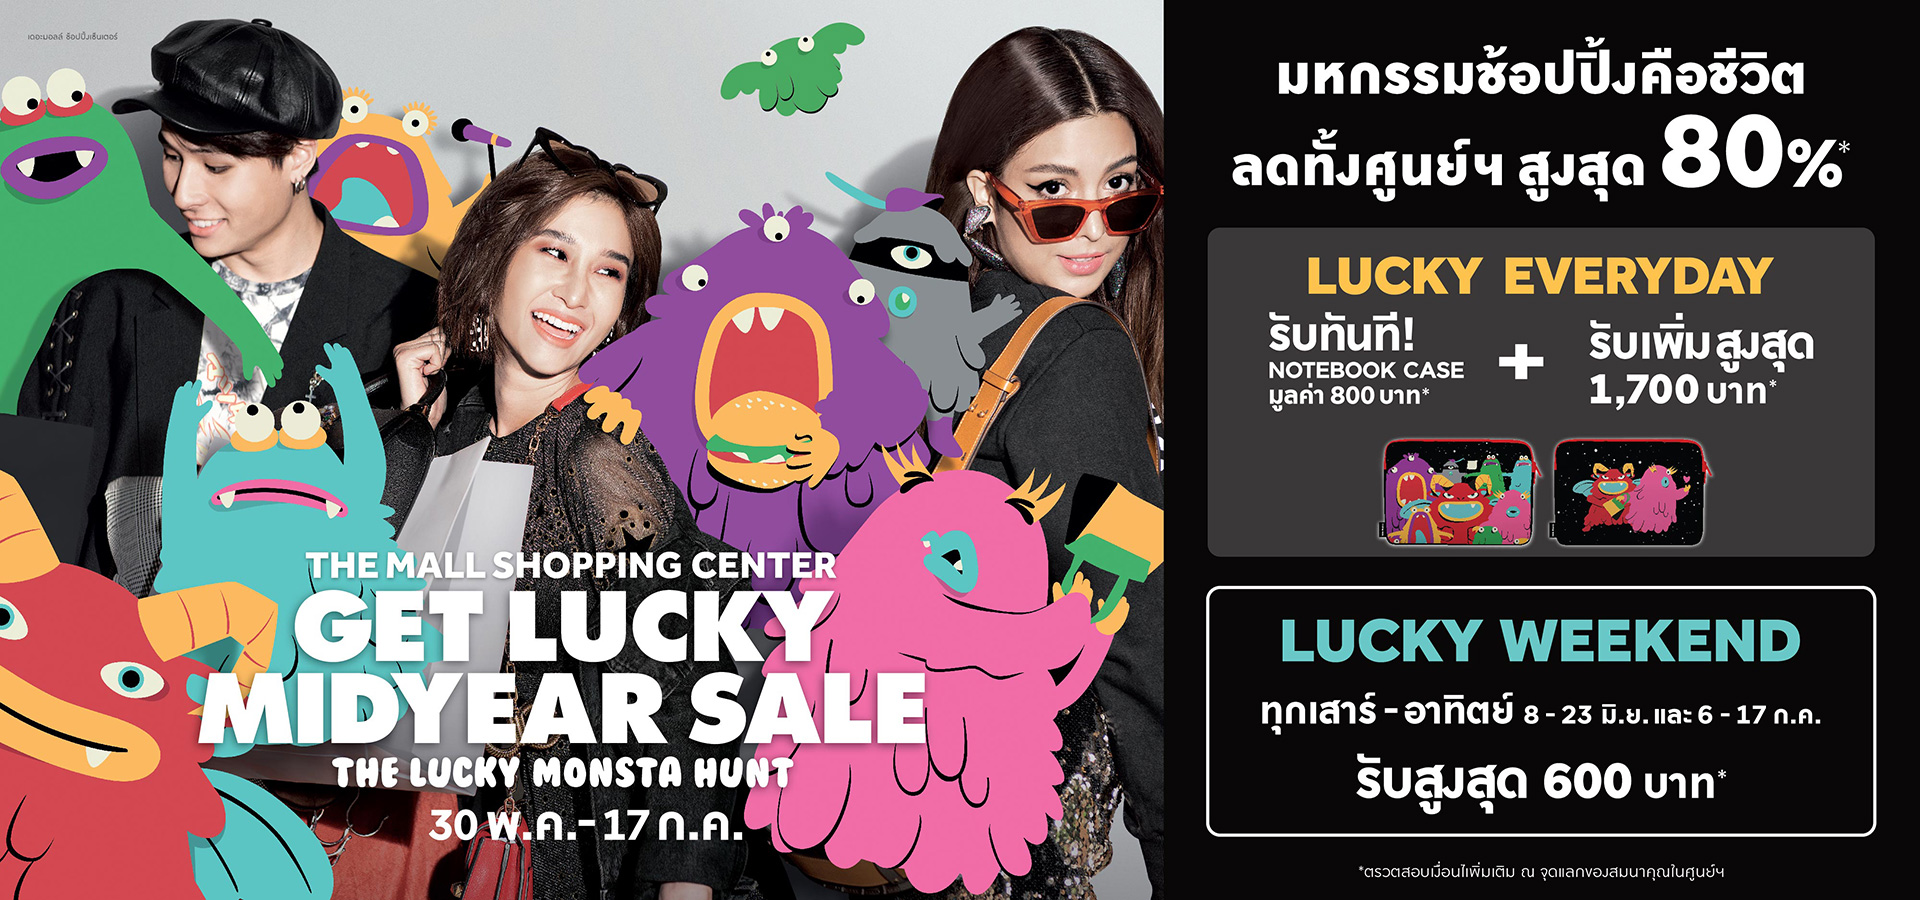 THE MALL SHOPPING CENTER  GET LUCKY MIDYEAR SALE